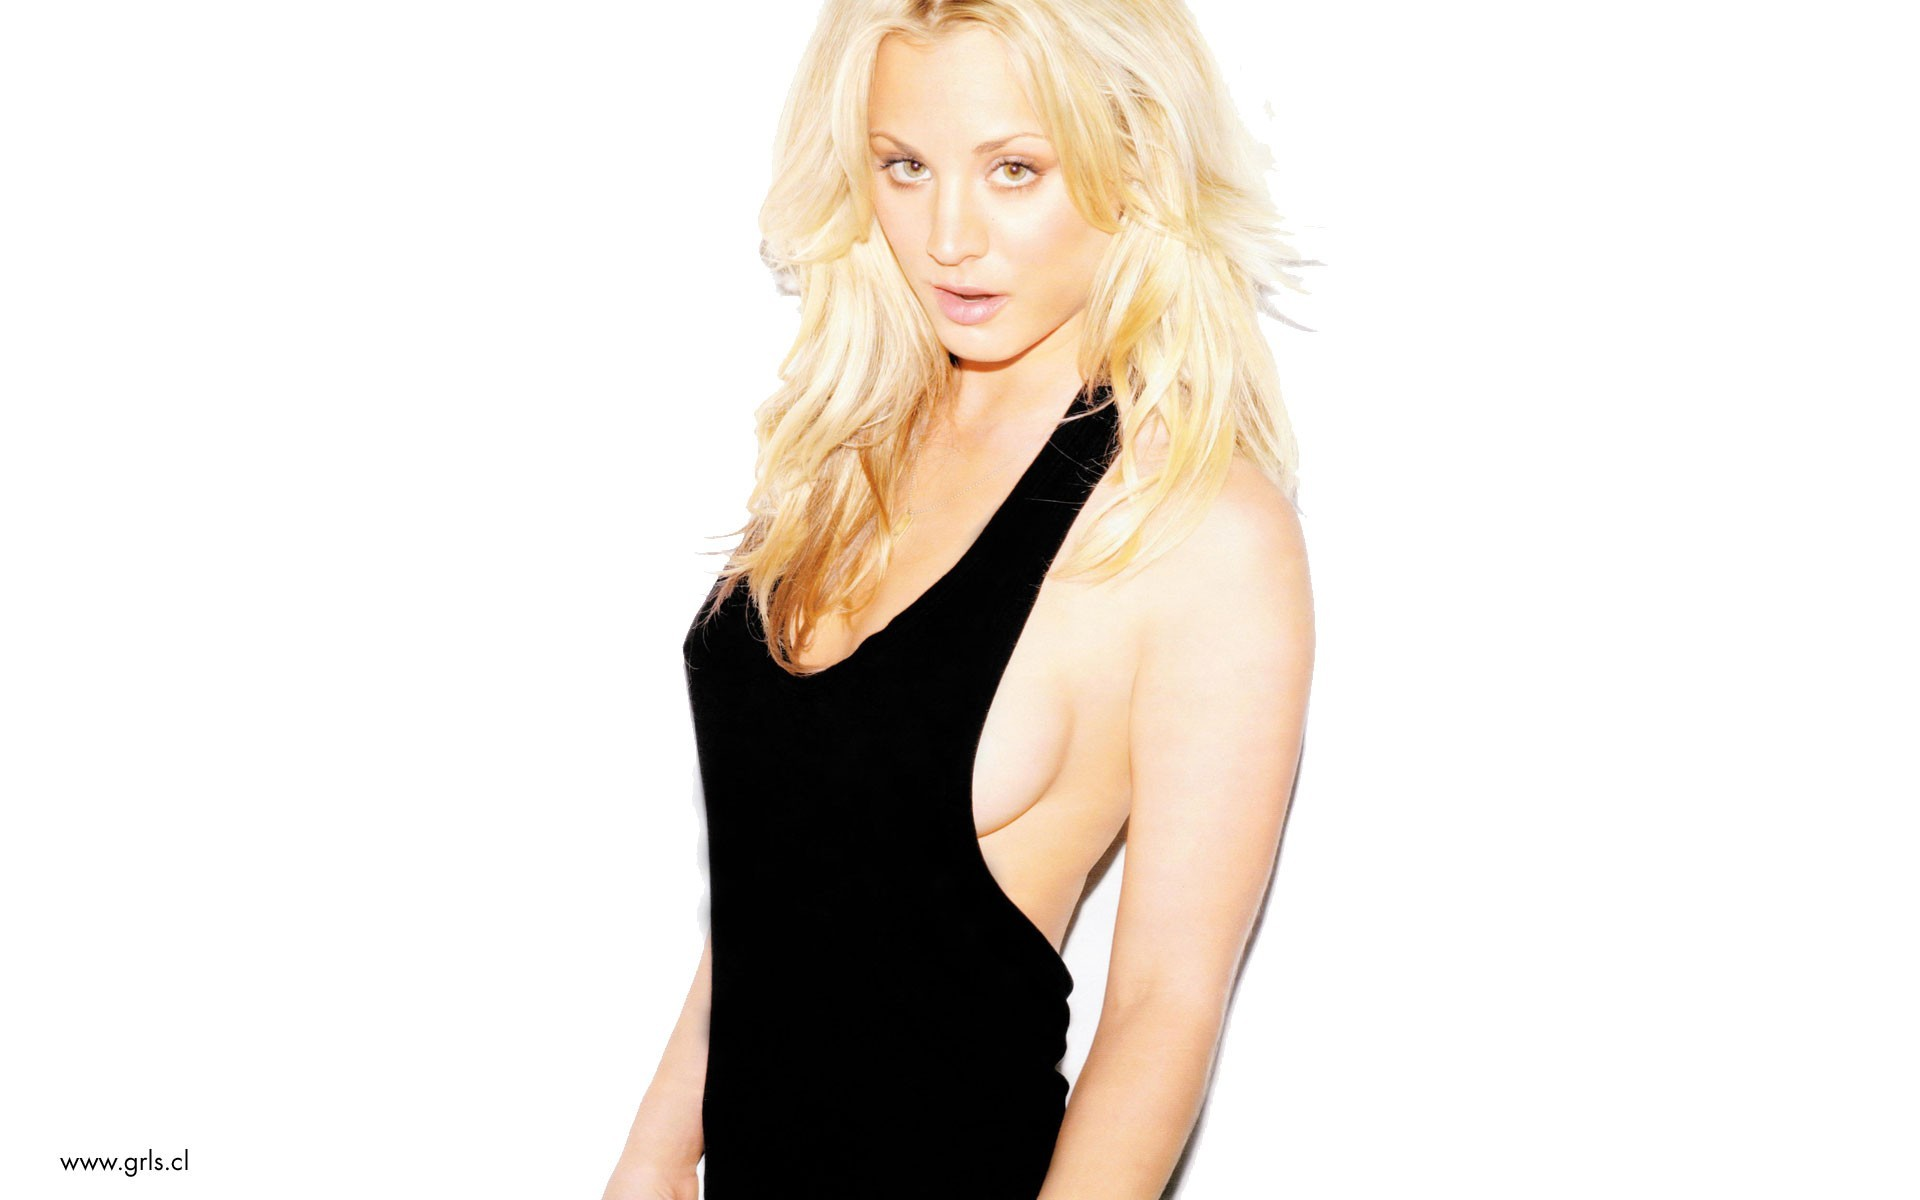 blondes woman kaley cuoco HD Wallpaper